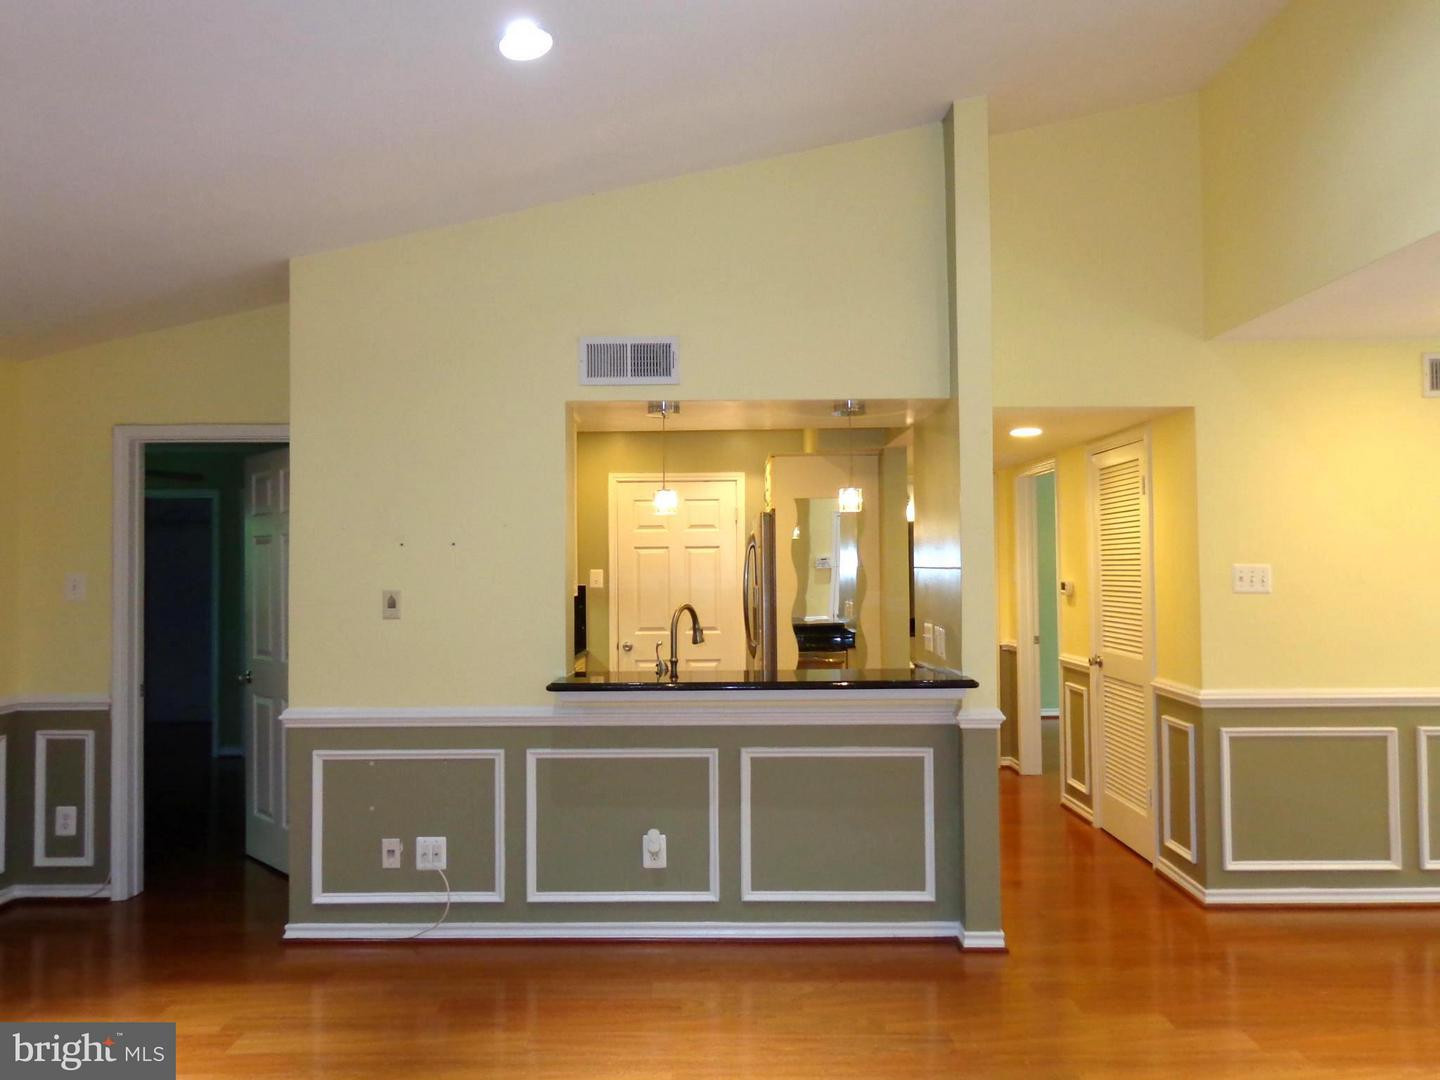 east penn hardwood flooring allentown pa of real estate for lease 1501 lincoln way mclean va 22102 mls intended for view photo slide show 30 30 photo